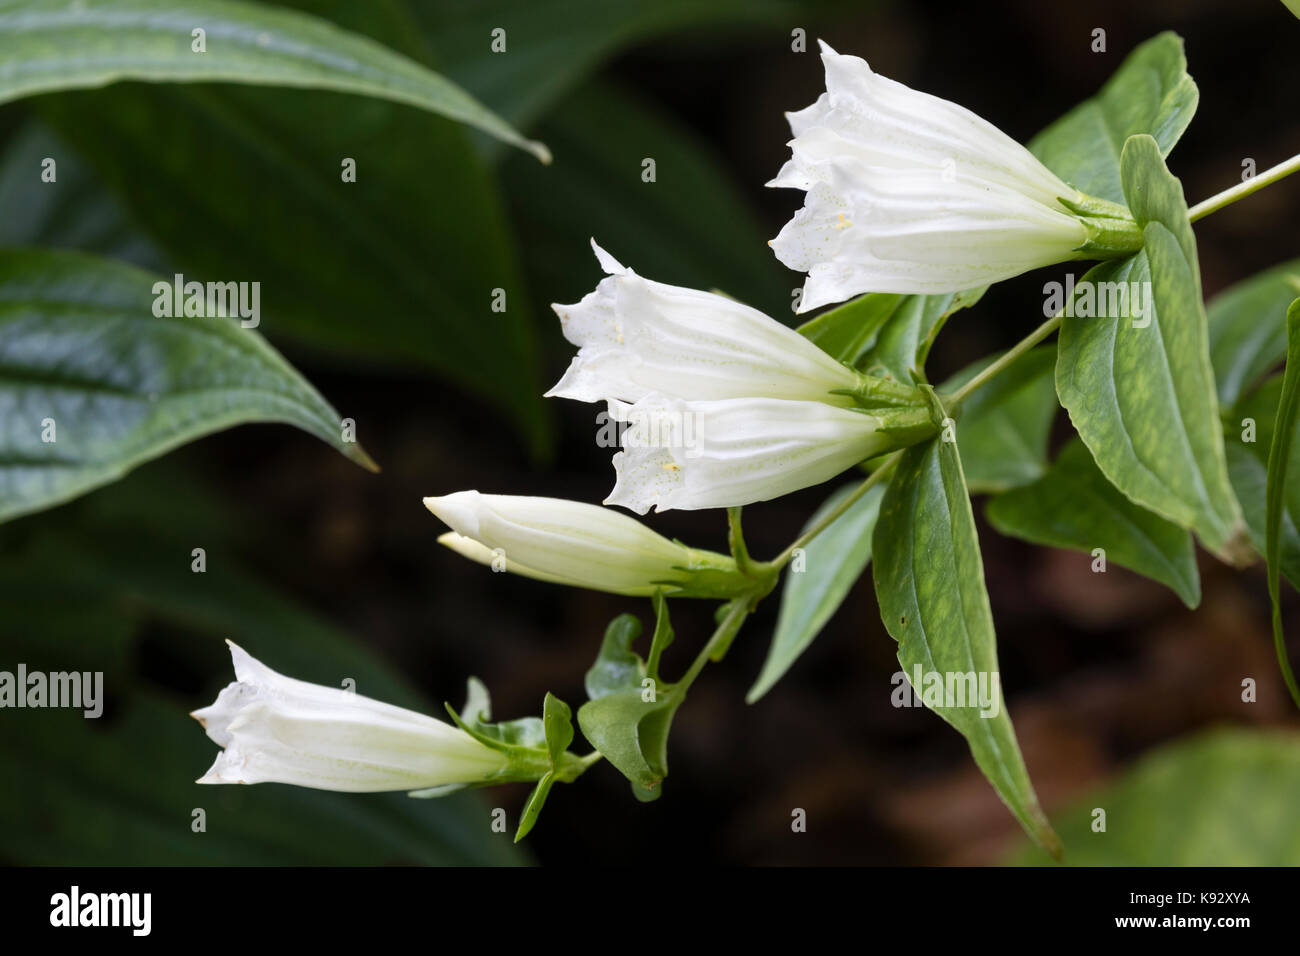 White autumn flowers of the hardy perennial willow gentian, Gentiana asclepiadea 'Alba' - Stock Image